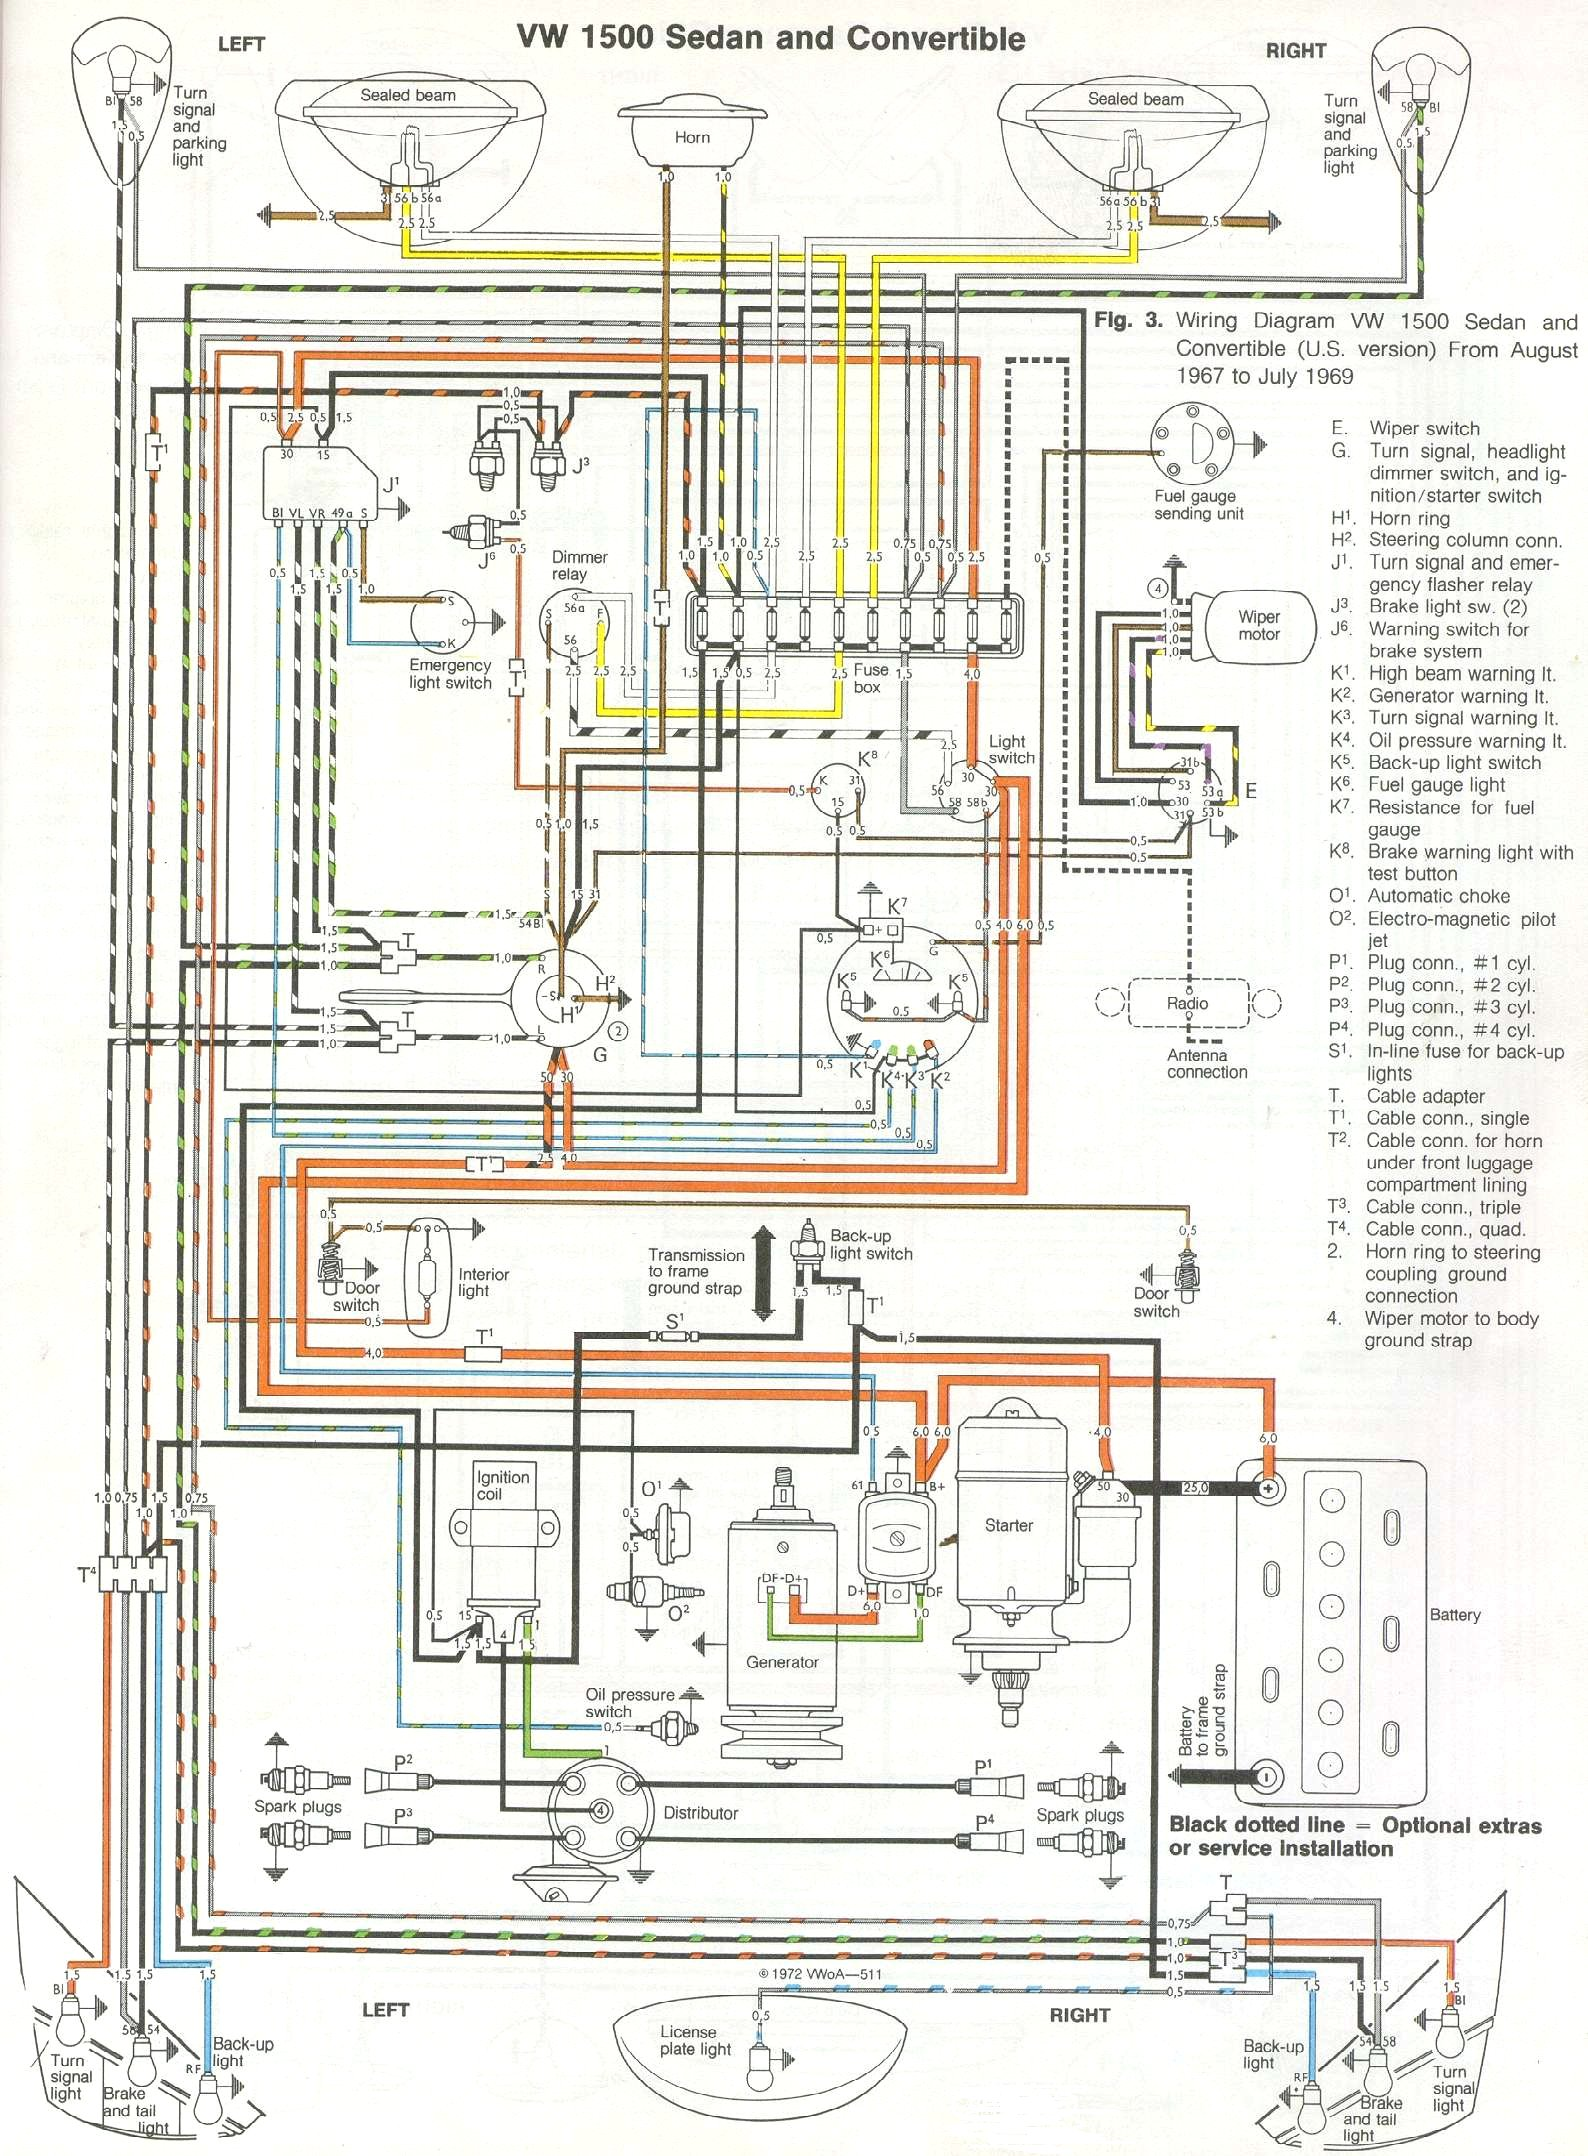 1966 Mustang Brake Light Schematic Schematics Wiring Diagrams 1970 Colorized Vacuum 1969 71 Beetle Diagram Thegoldenbug Com Body Measurement Points Photography